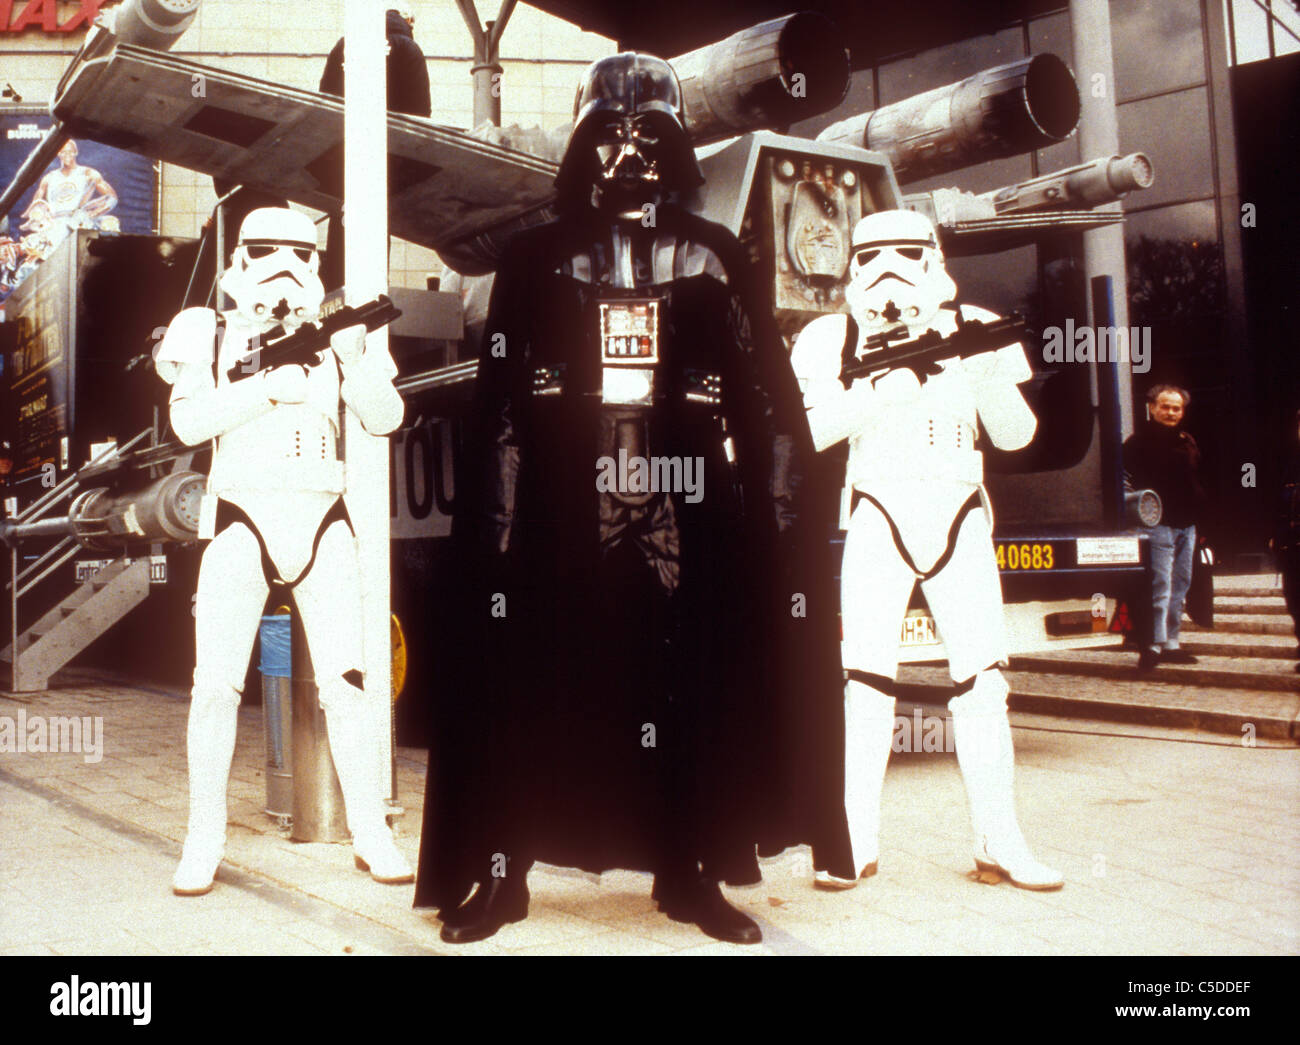 Star Wars Episode Iv A New Hope High Resolution Stock Photography And Images Alamy